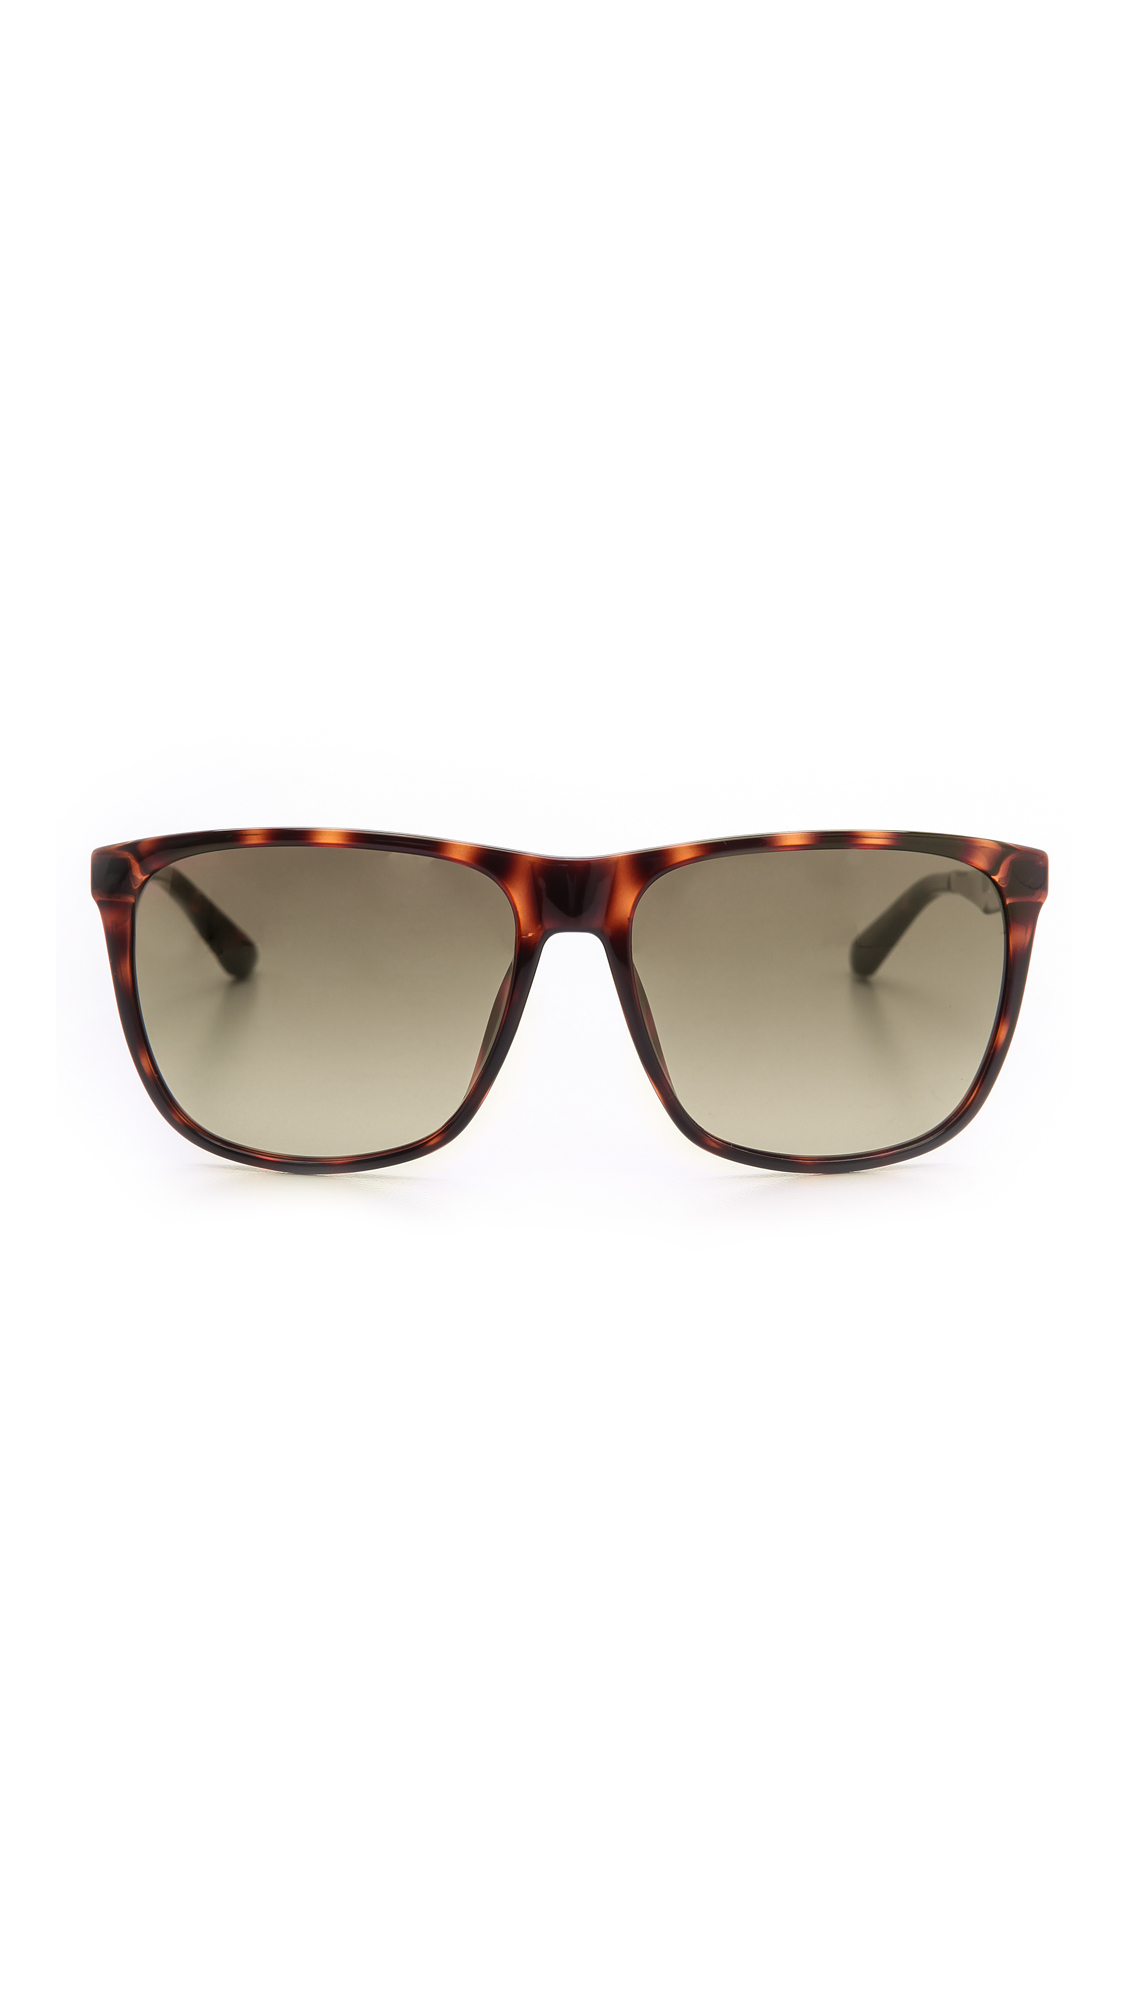 Lyst Marc By Marc Jacobs Flat Top Sunglasses Havanabrown